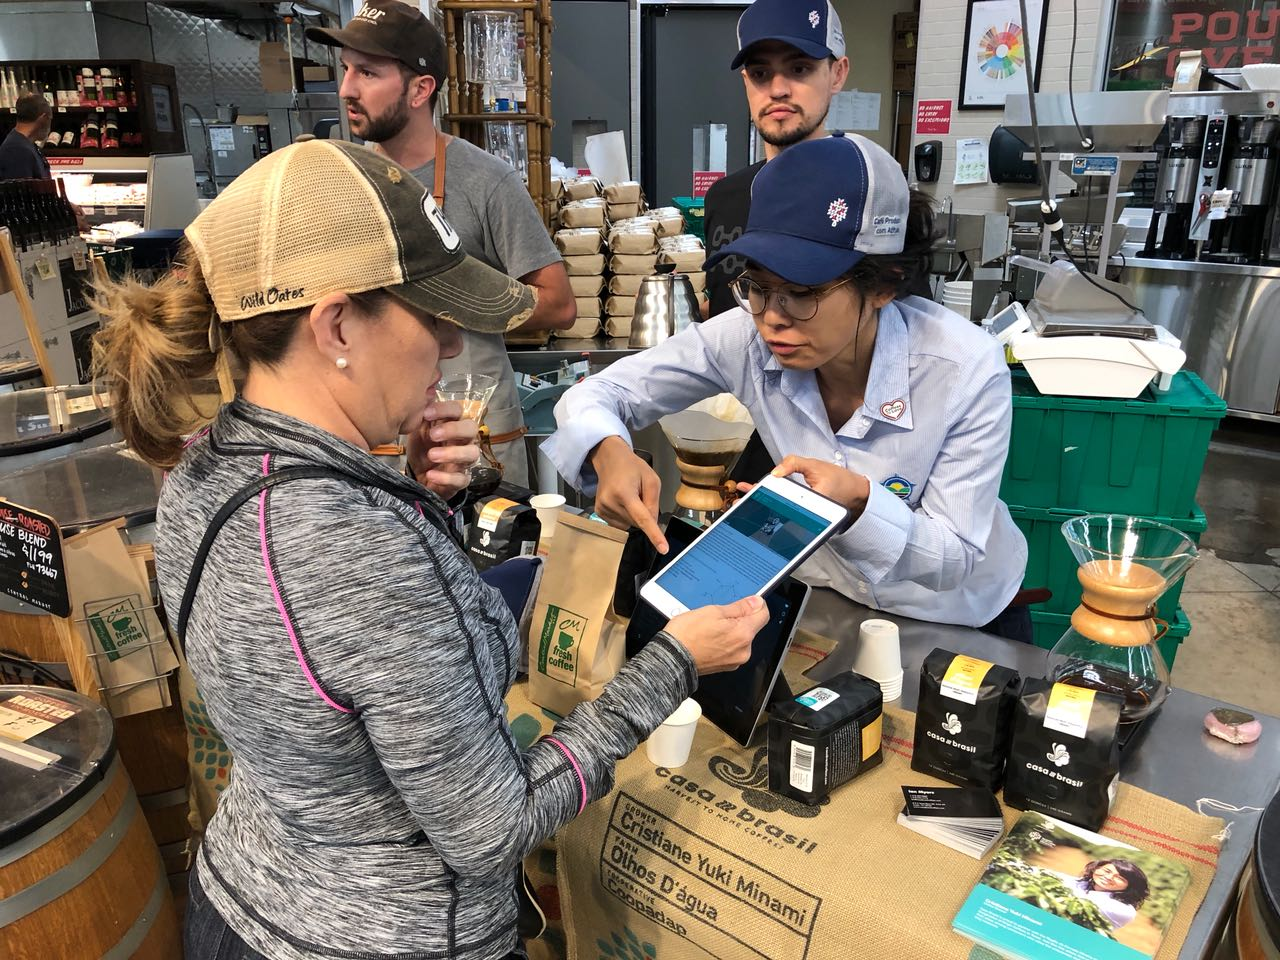 Reading the QR code that shows the coffee traceability up to the producer and farm level to a customer at Central Market